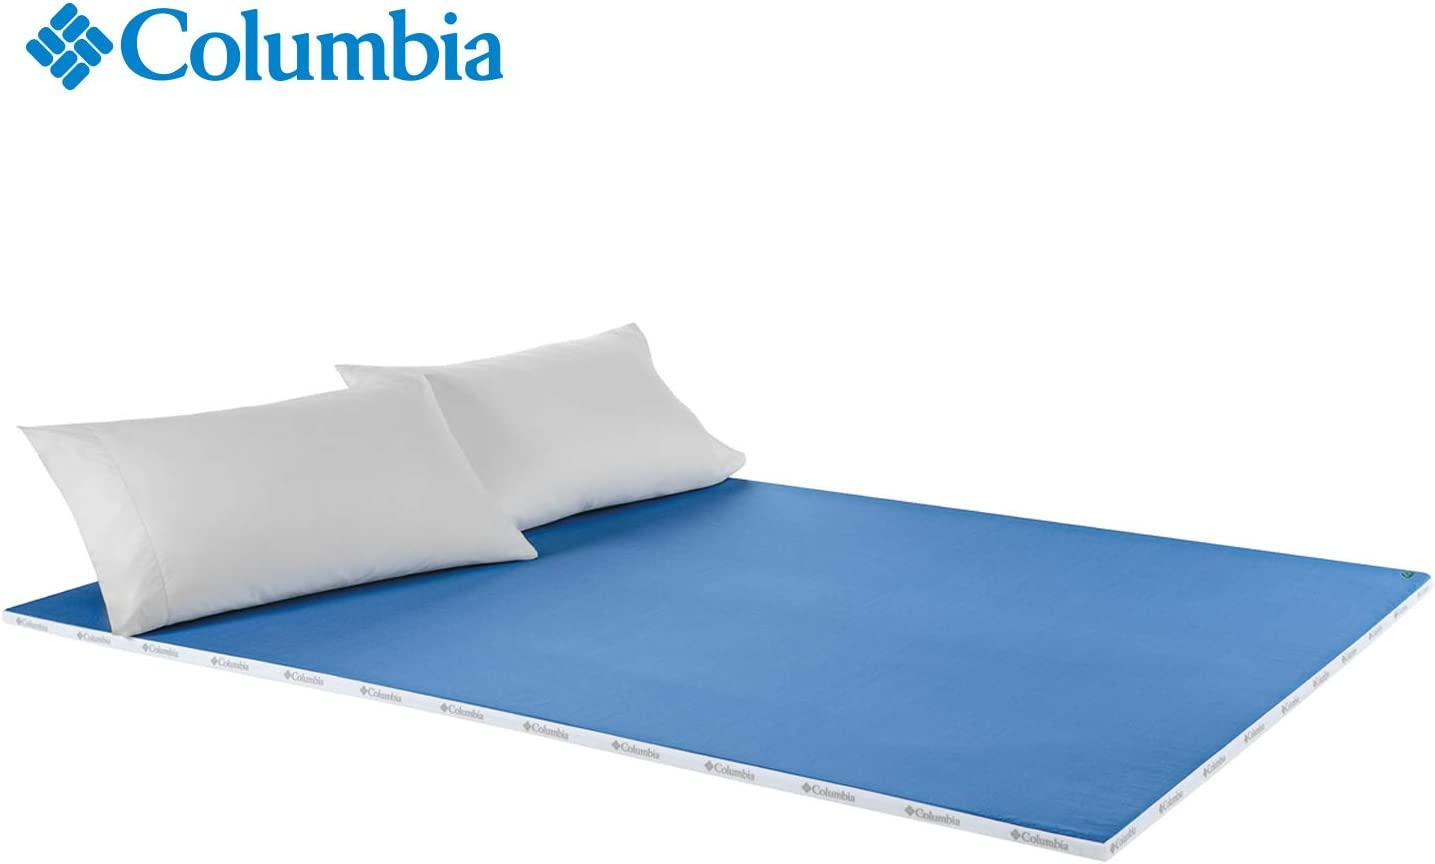 "Columbia Revolutionary Extreme Cooling 1"" Memory Foam Mattress Enhancer - Molds to Your Body Enhancing Sleep - Omni-Wick Washable Cover Pulls Away Moisture - Like Sleeping on a Sheet of Ice - King"